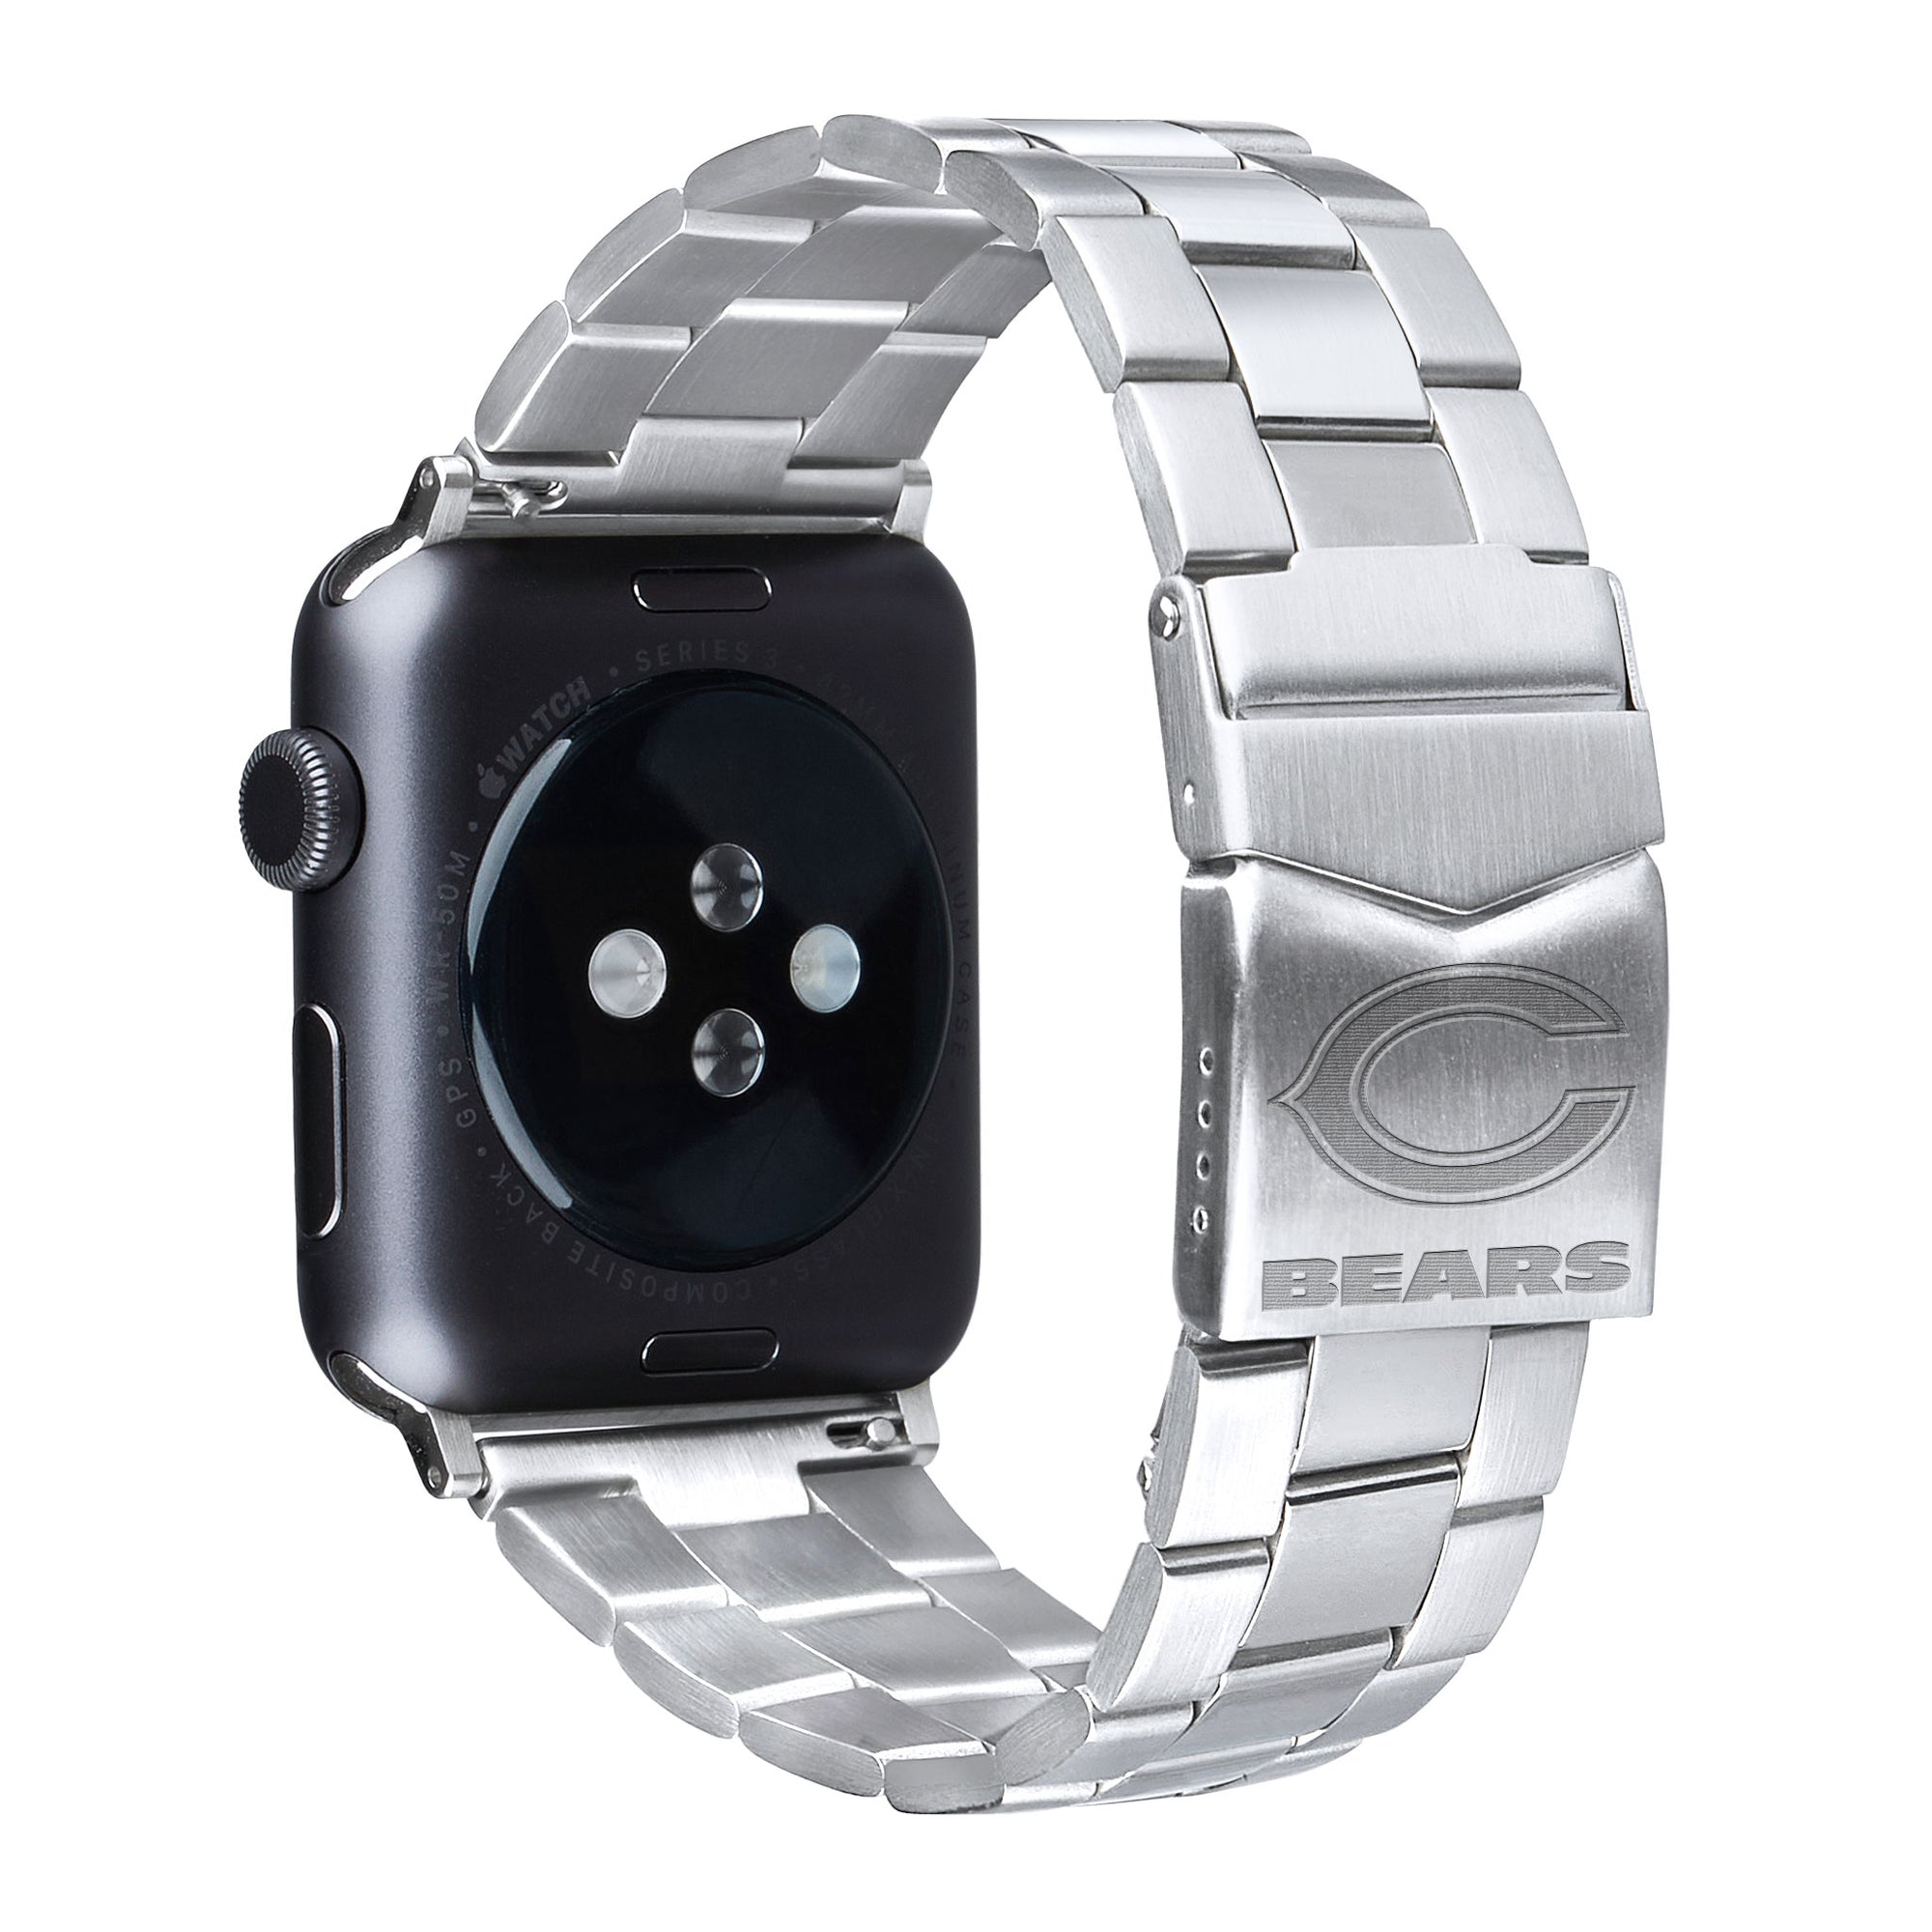 Chicago Bears Stainless Steel Link Style Apple Watch Band - AffinityBands